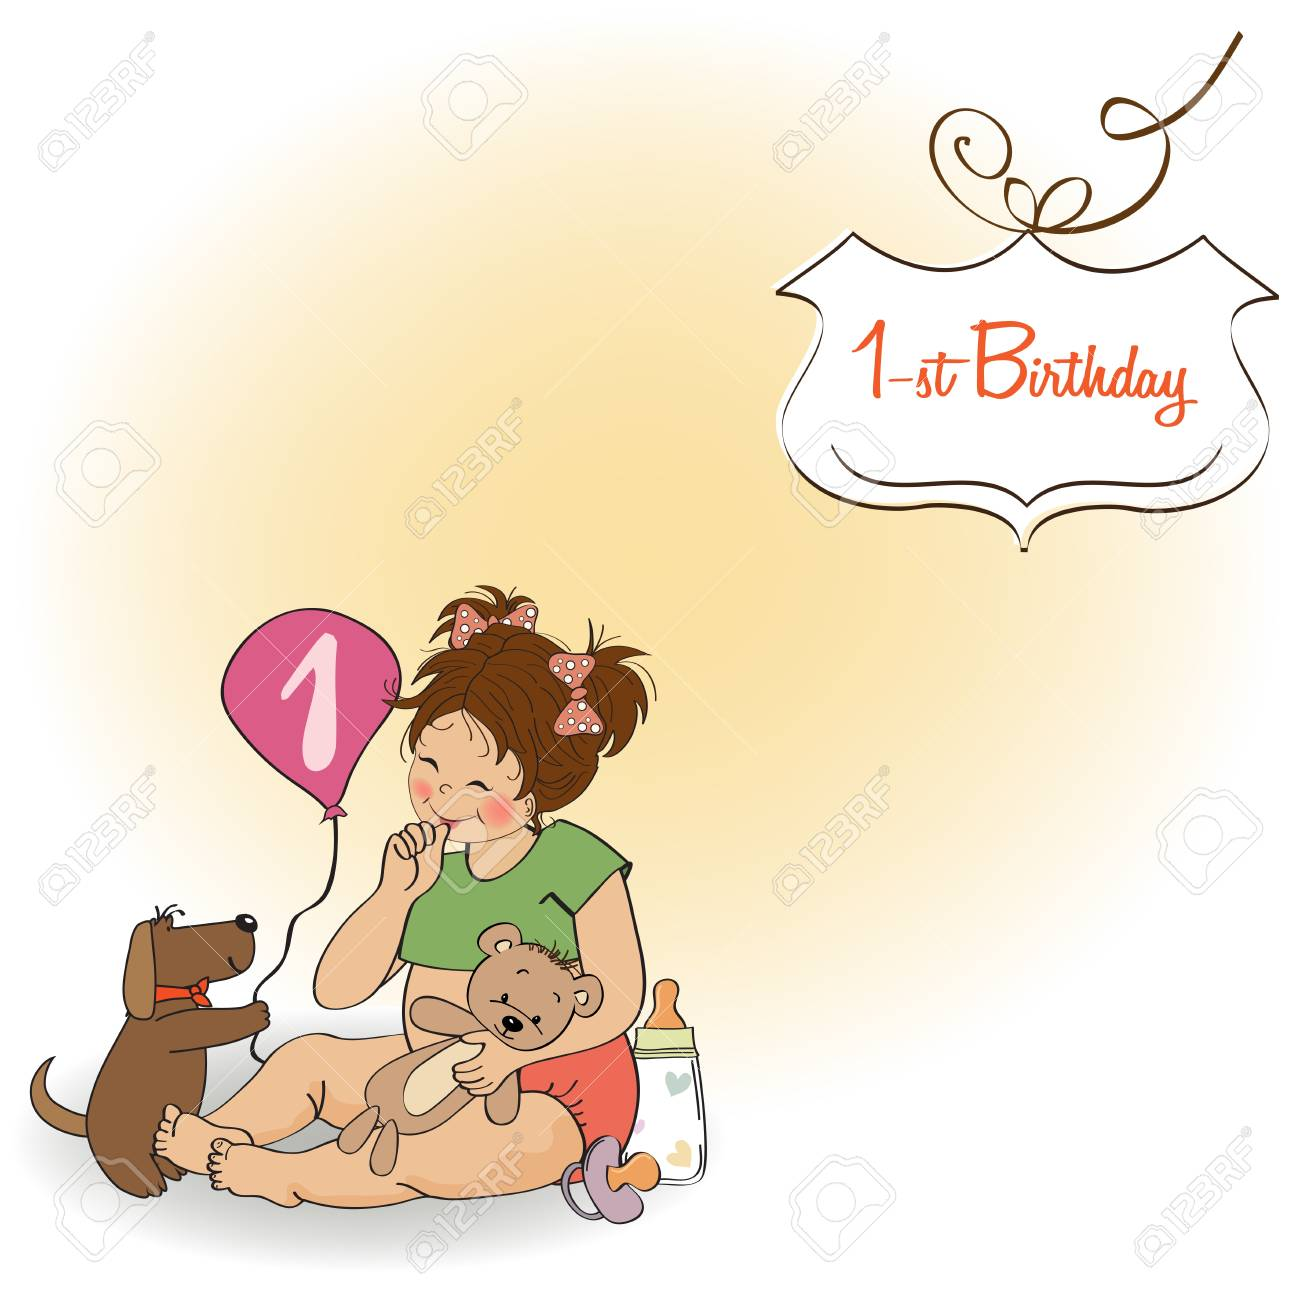 little girl at her first birthday, vector illustration Stock Vector - 18401100